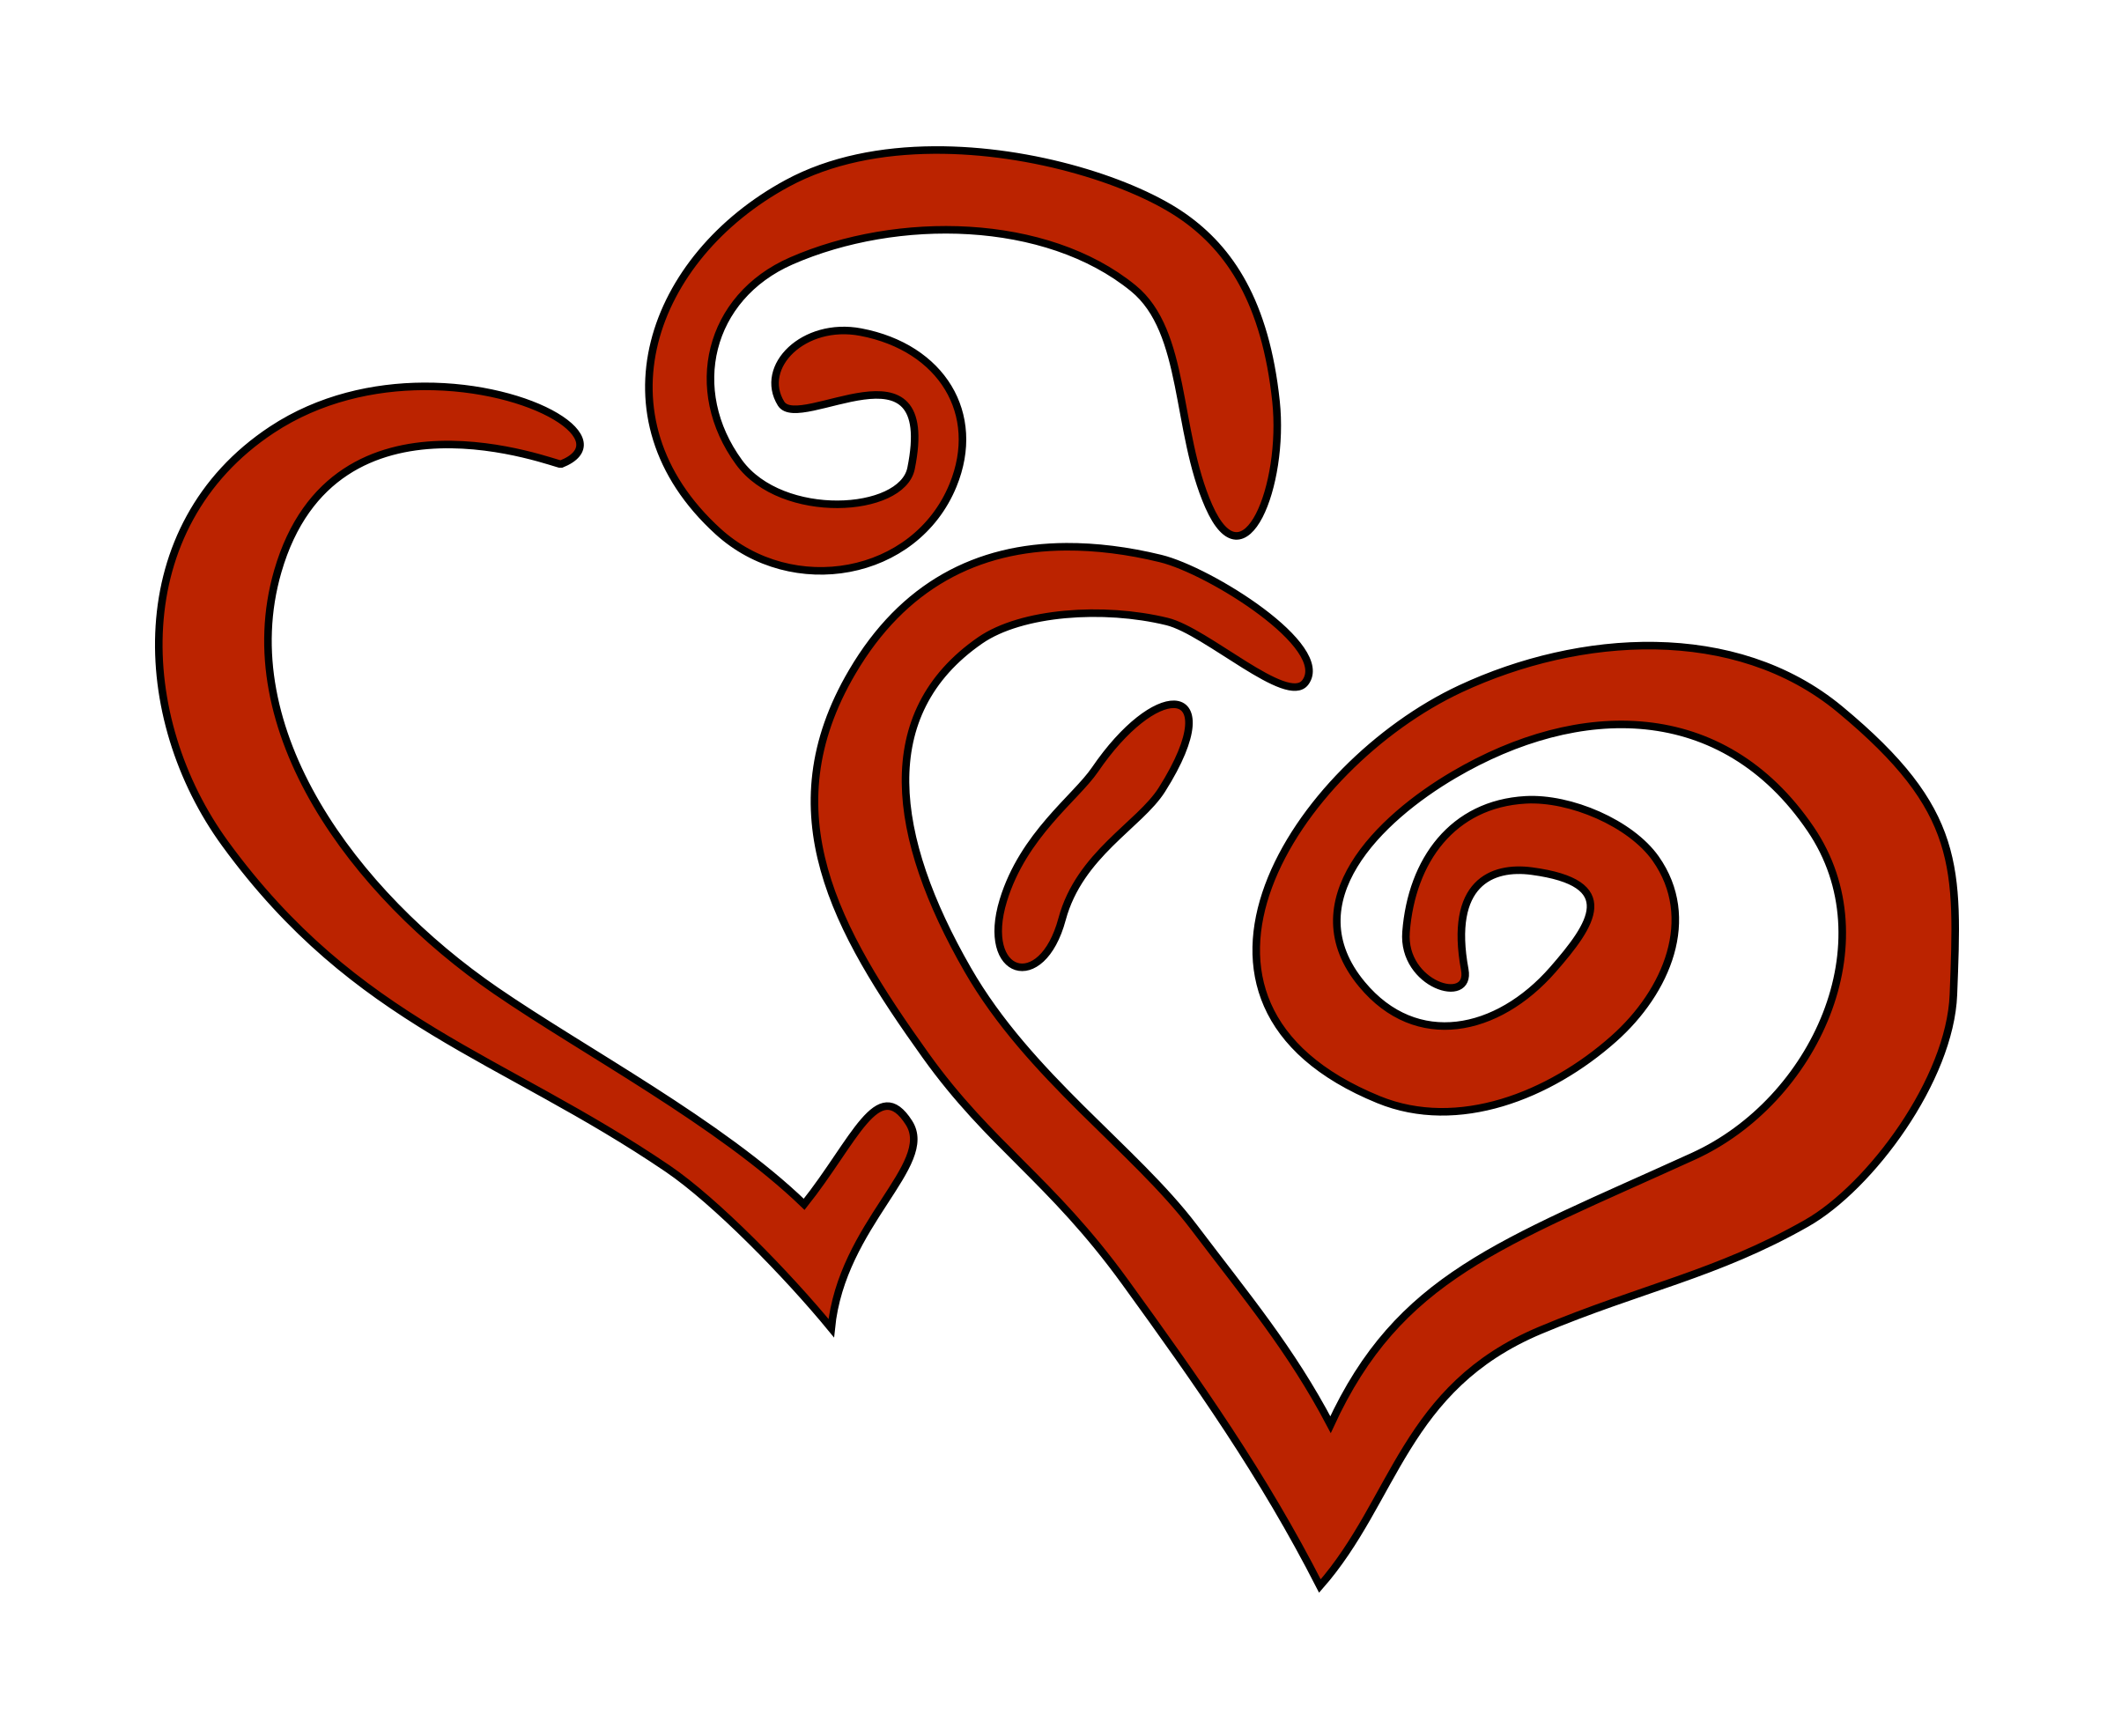 2 hearts png. Icons free and